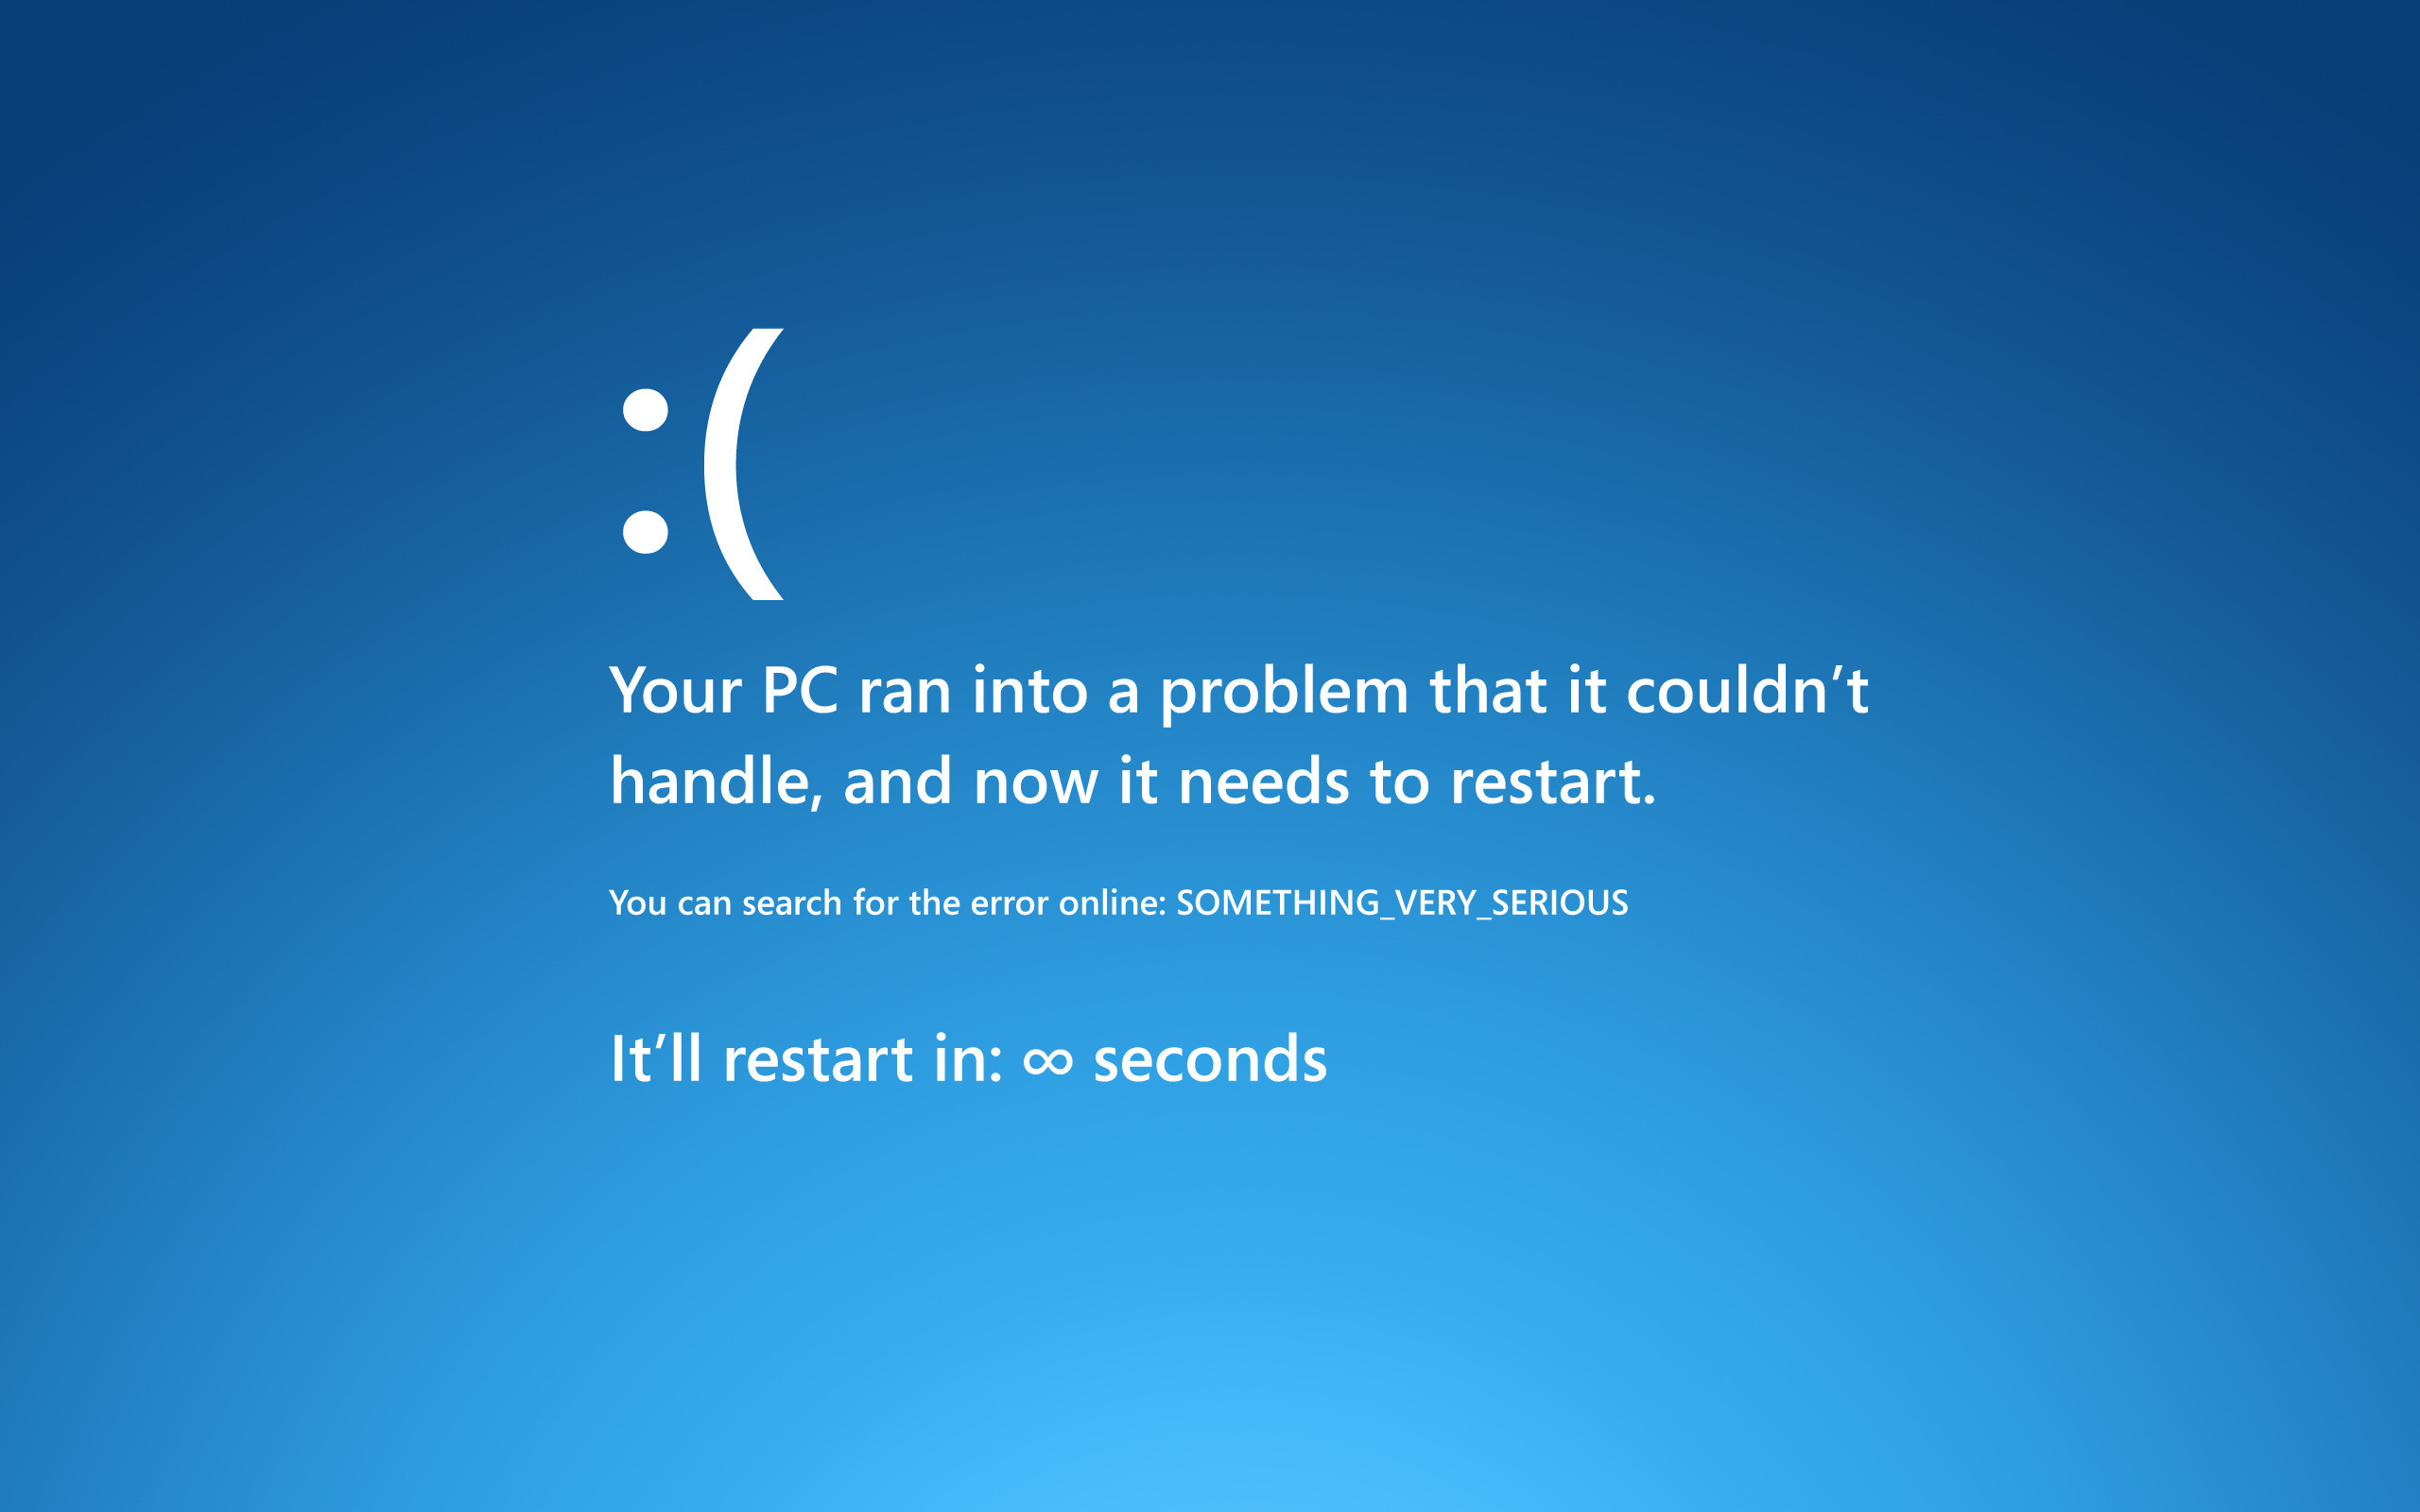 funny coding wallpapers hd – photo #4. Pictures and descriptions of cool  products on the internet